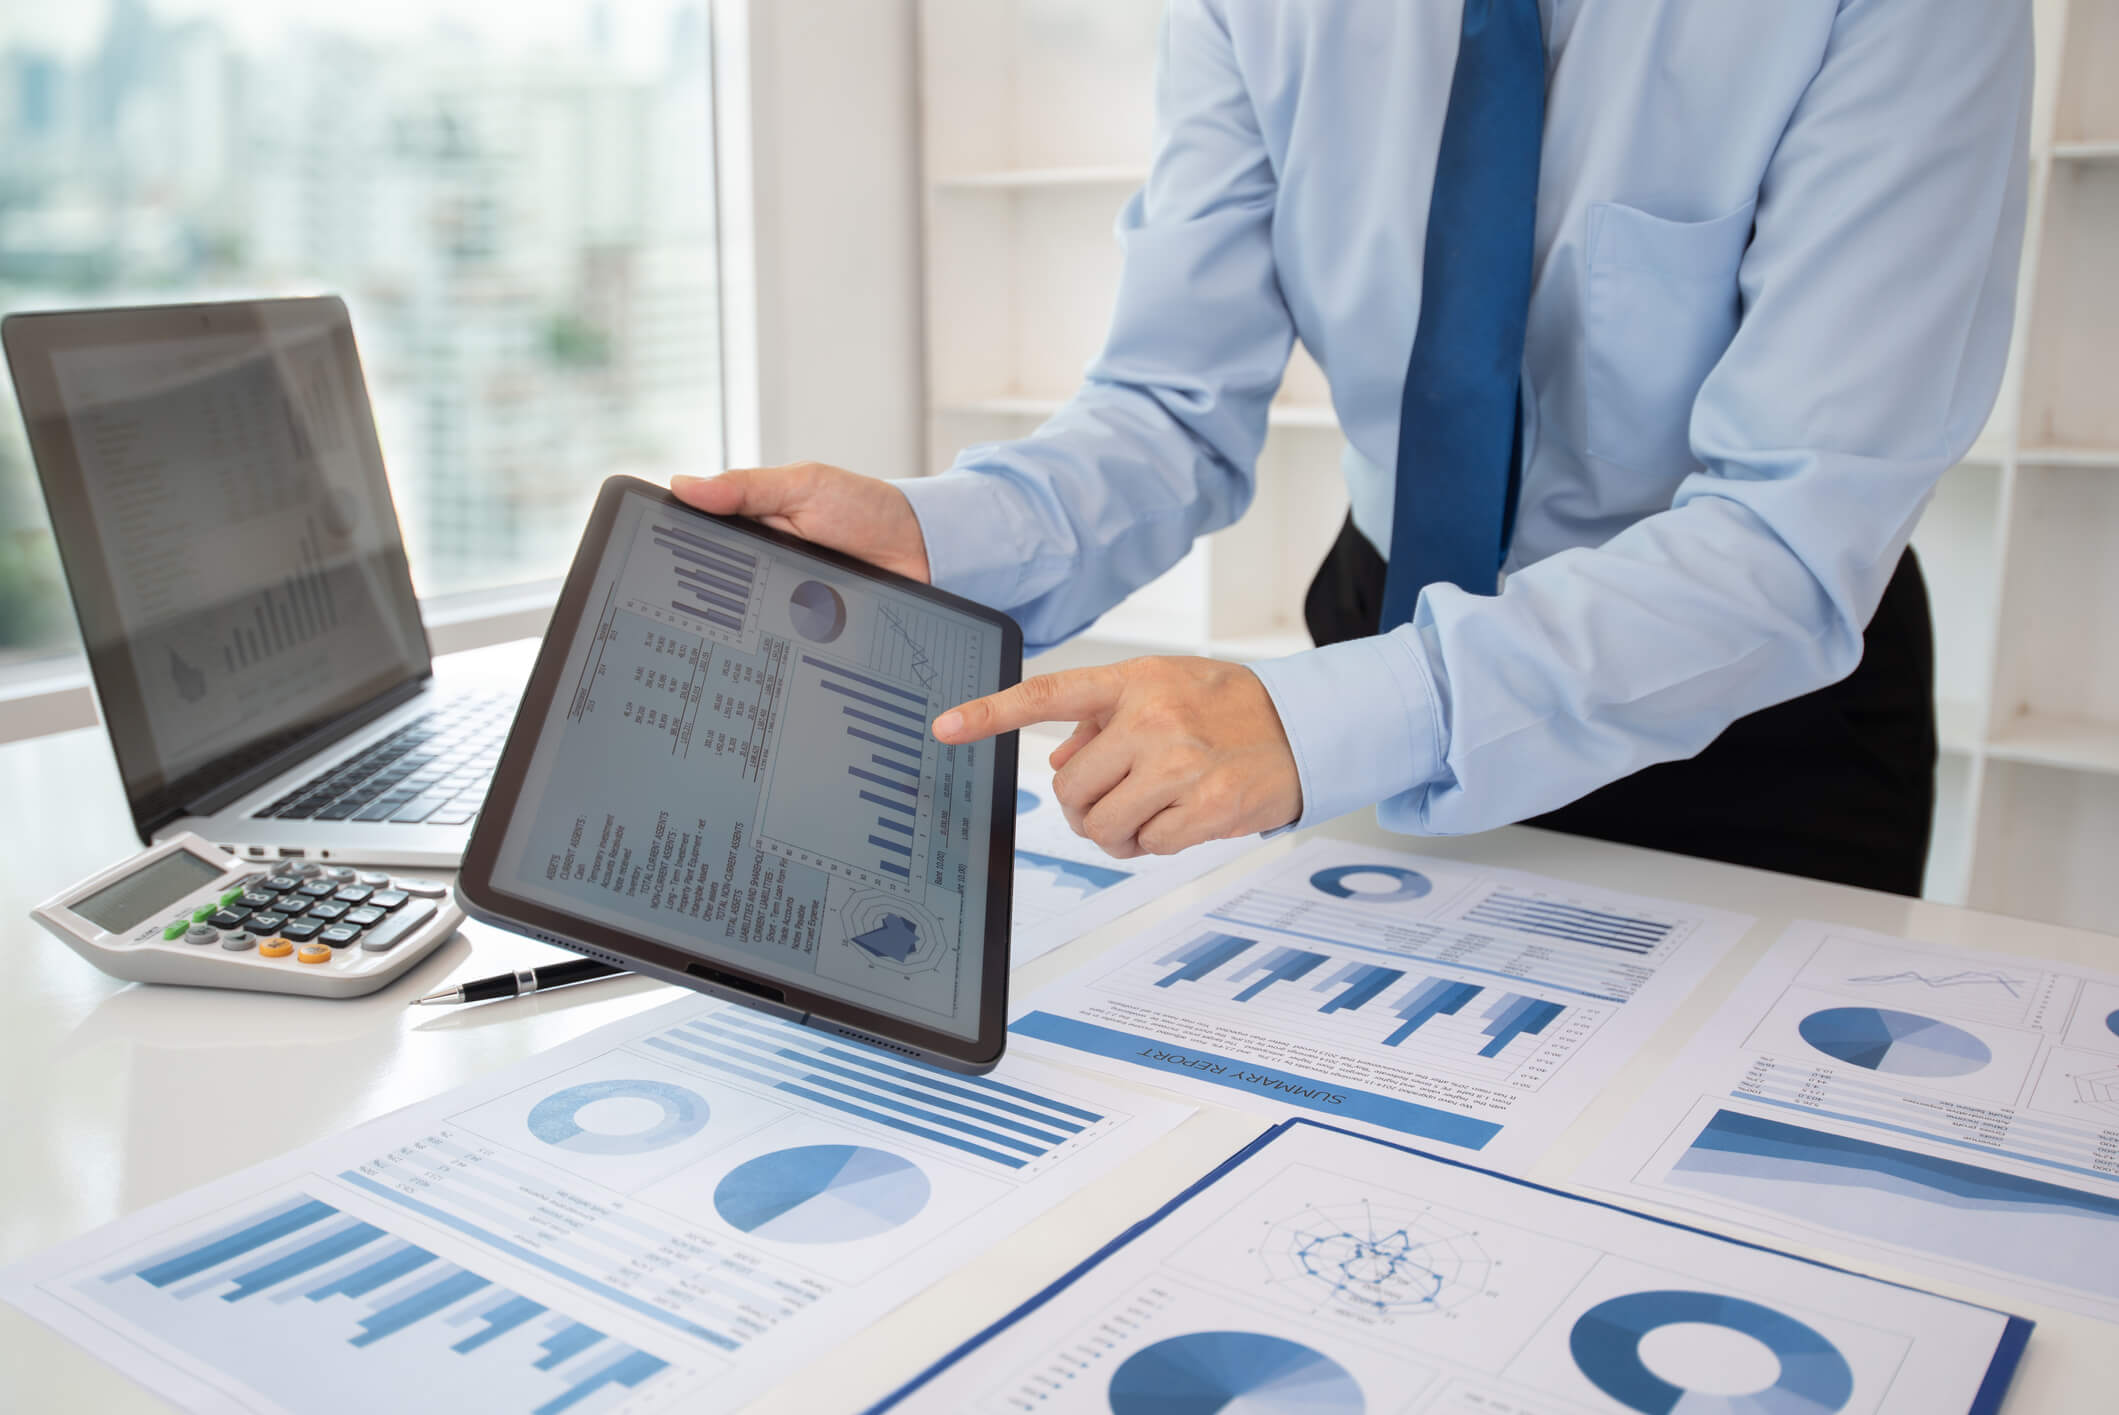 5 QuickBooks Web-Based Alternatives You Can Switch To